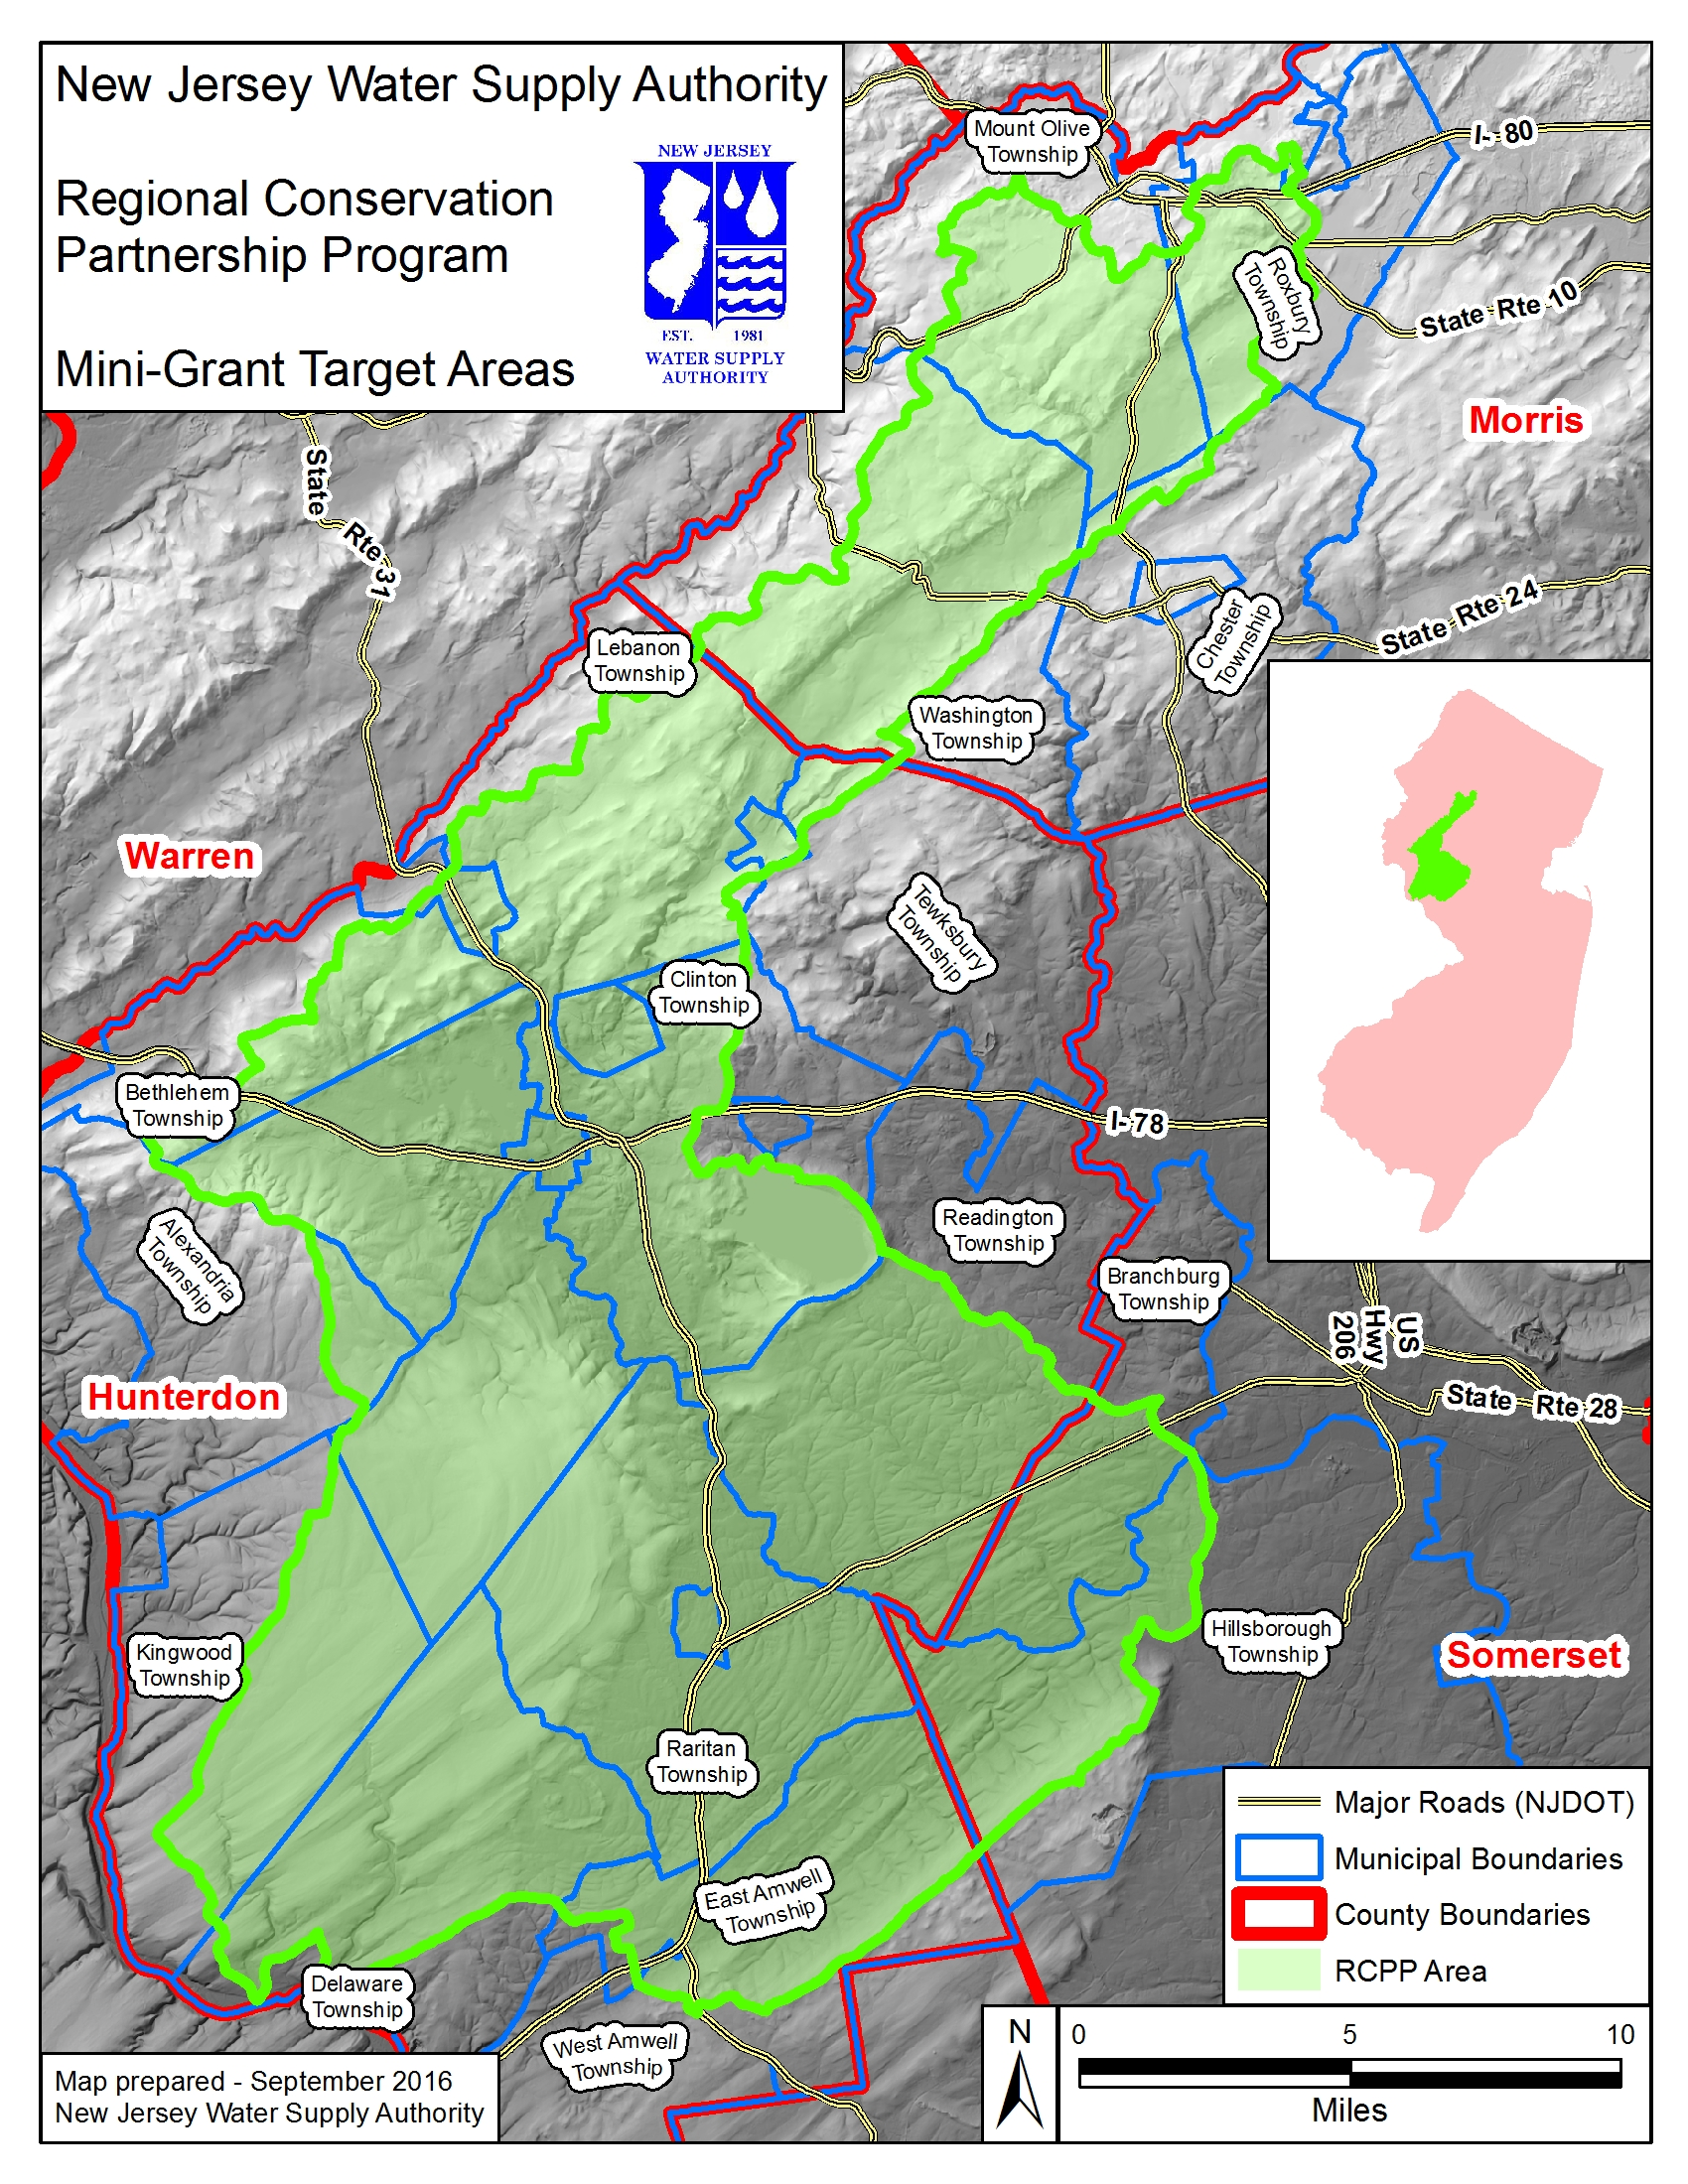 Raritan Basin Partners for Source Water Protection is focused on the area shown on this map.